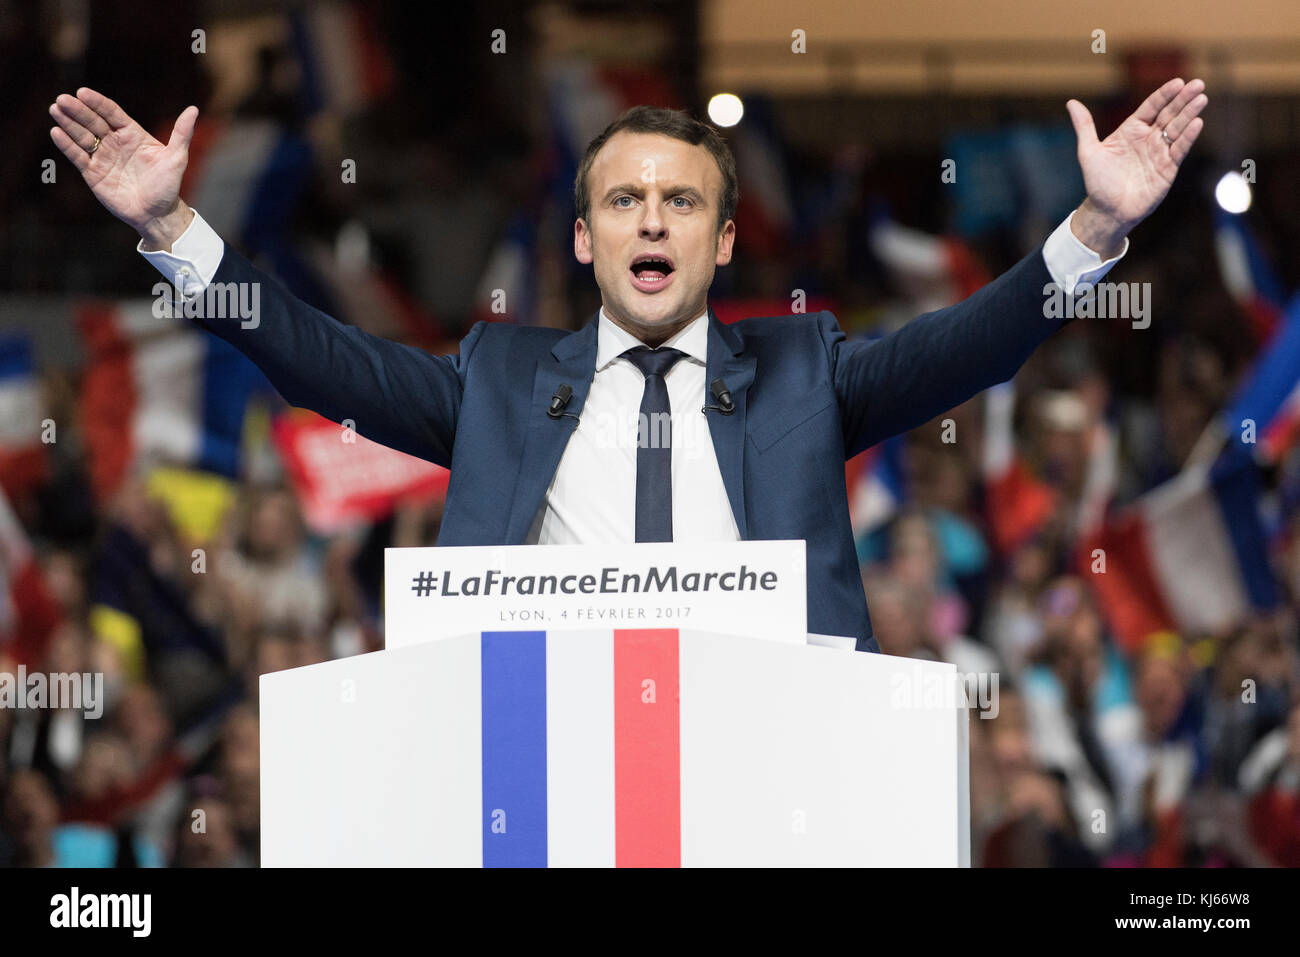 Palais des Sports de Gerland, an indoor sporting arena located in Lyon, on 2017/02/04: meeting with Emmanuel Macron, Stock Photo